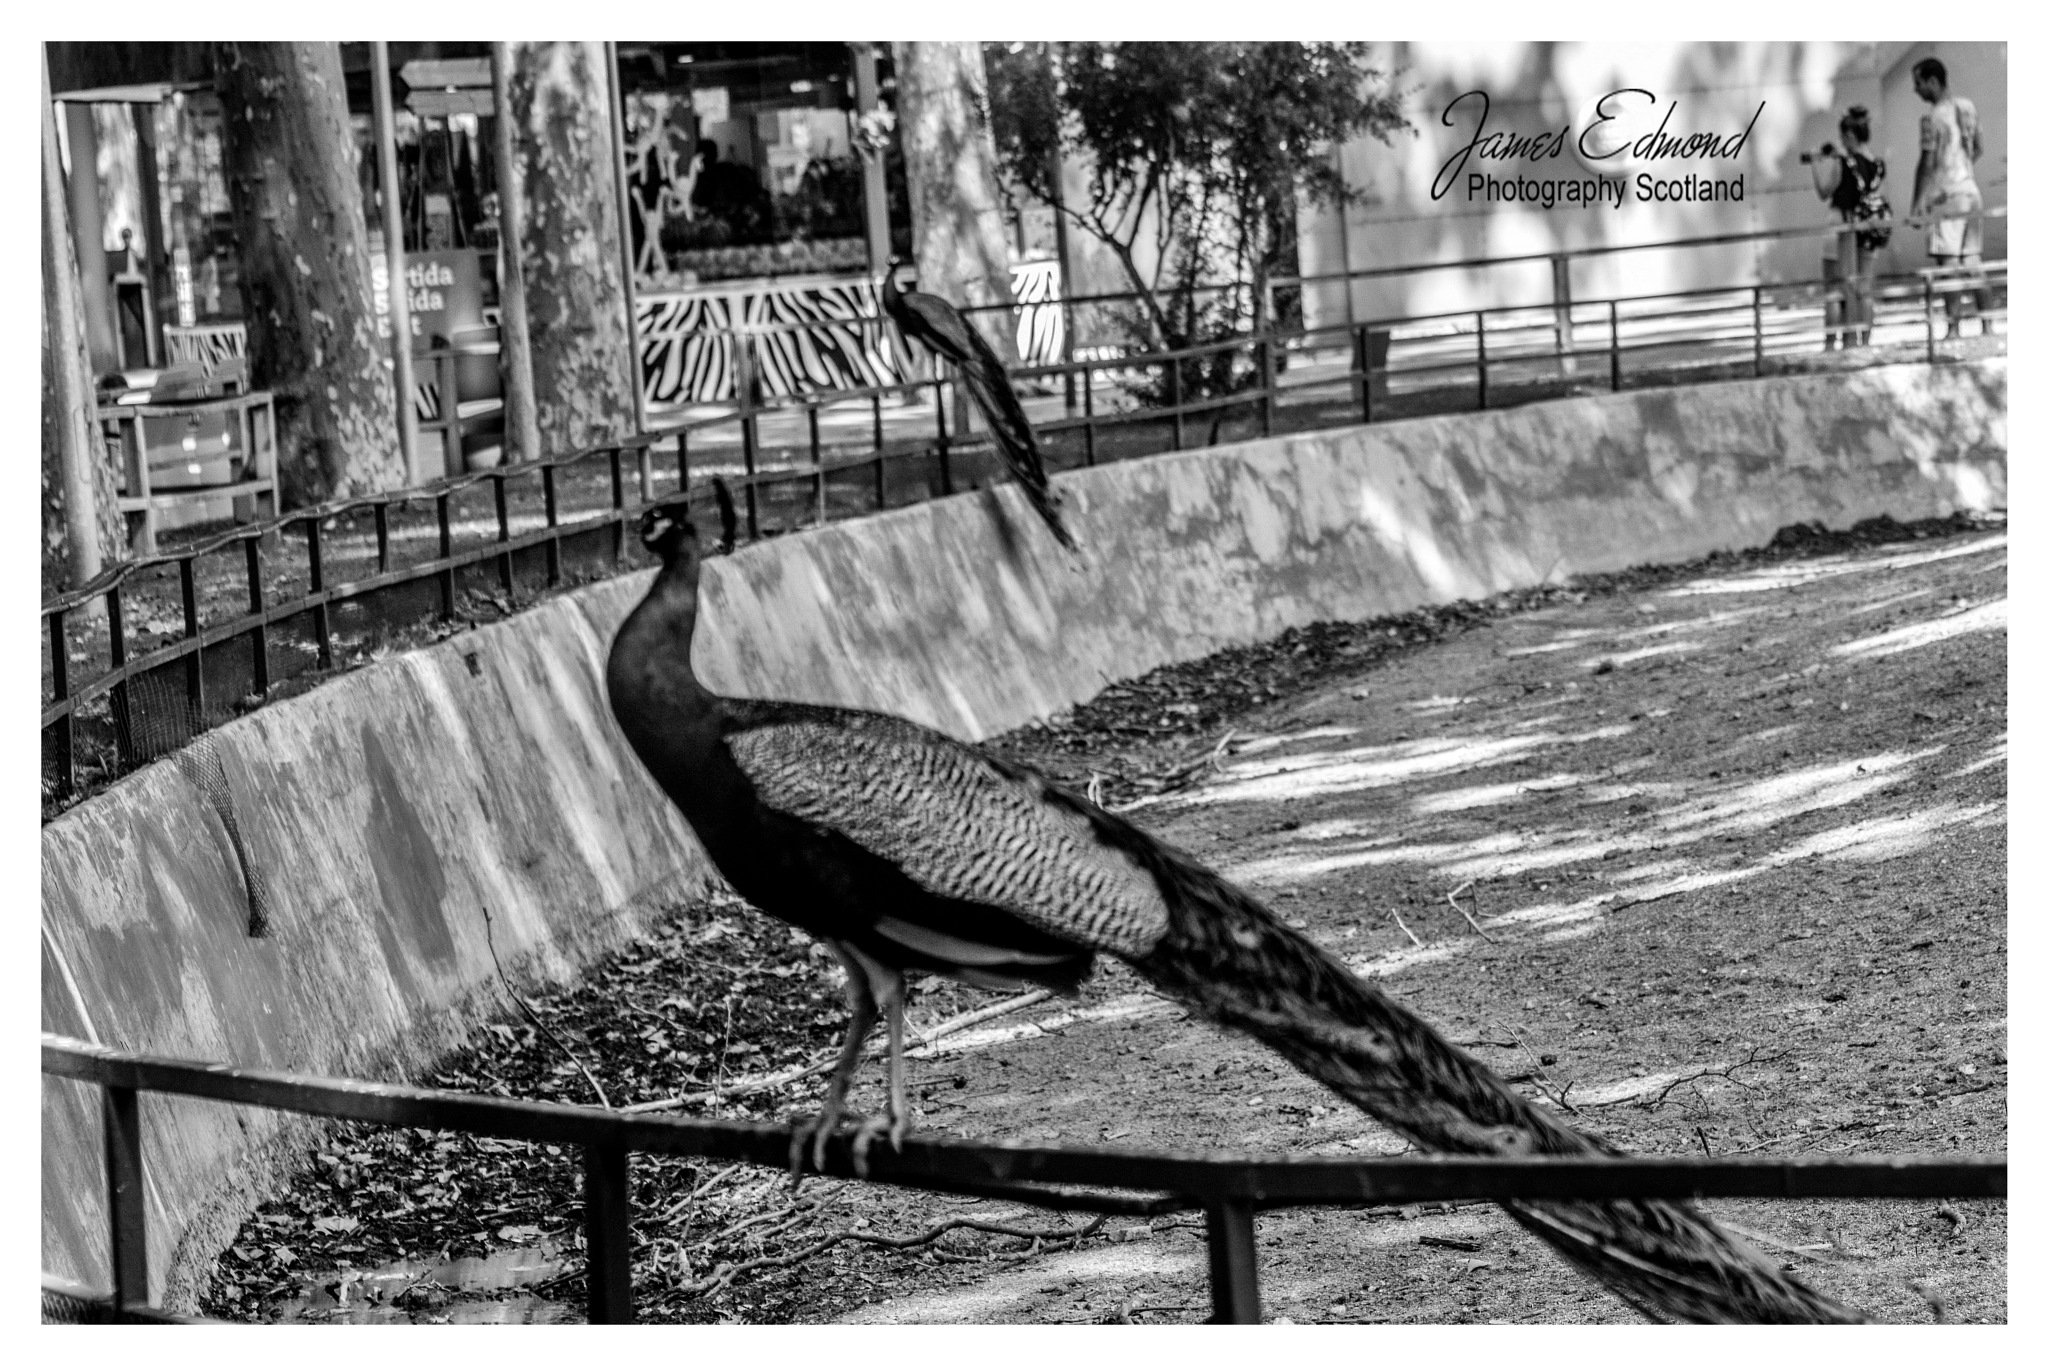 Peacock in Monochrome by James Edmond Photography